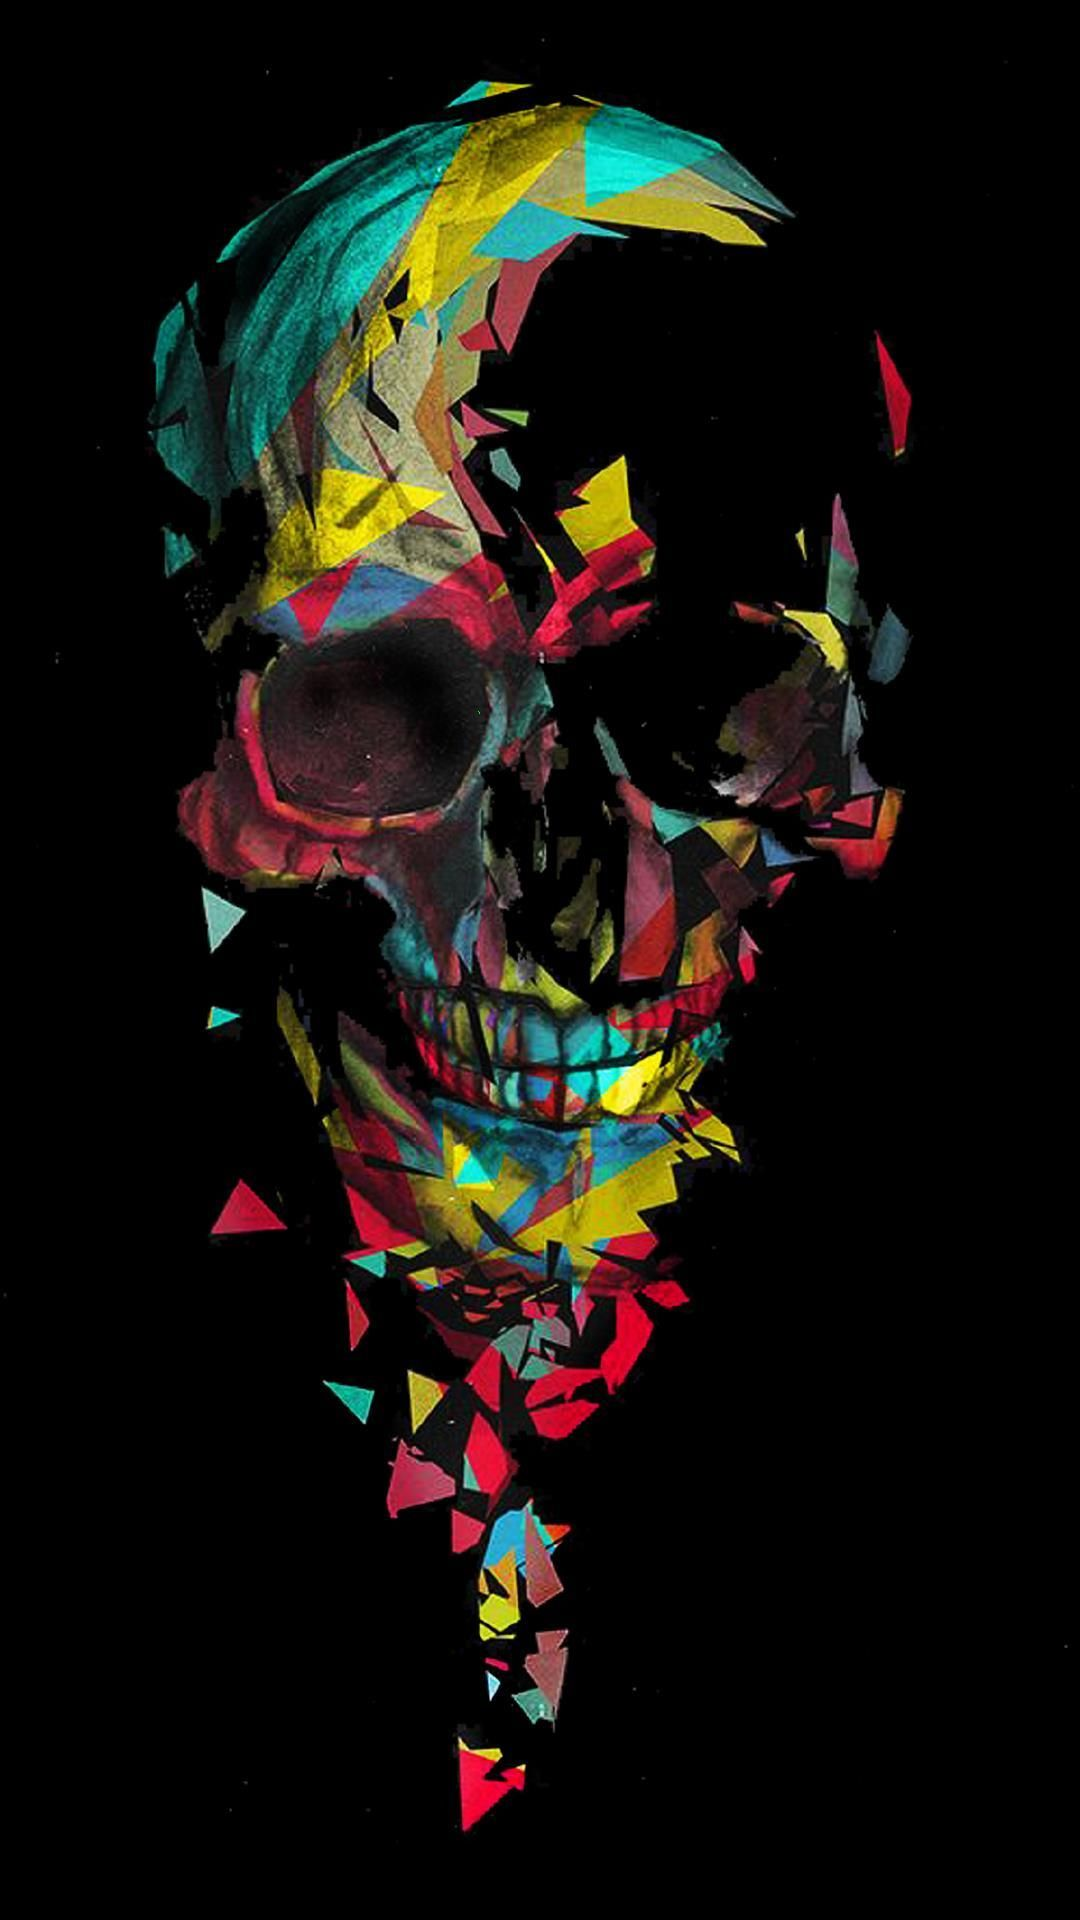 Colored Skull Skull Wallpaper Skull Art Wallpaper